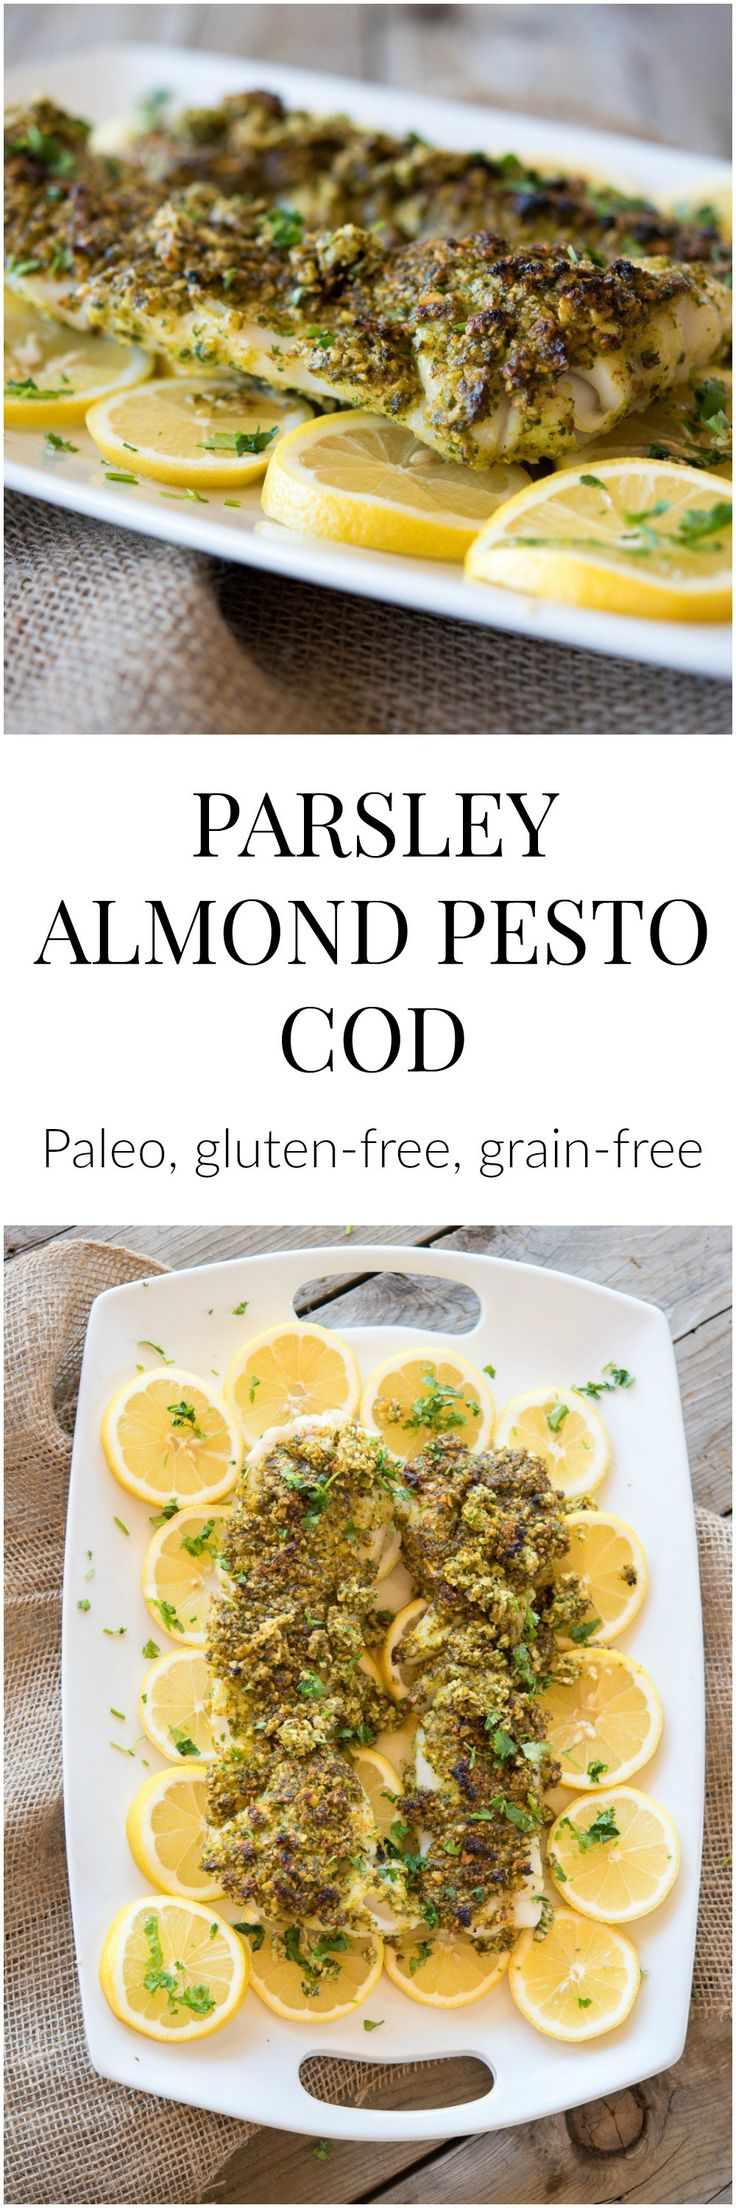 Paleo Parsley Almond Pesto Cod - a recipe for a gluten-free and dairy-free broiled fish dinner which takes less than 15 minutes from start to finish.